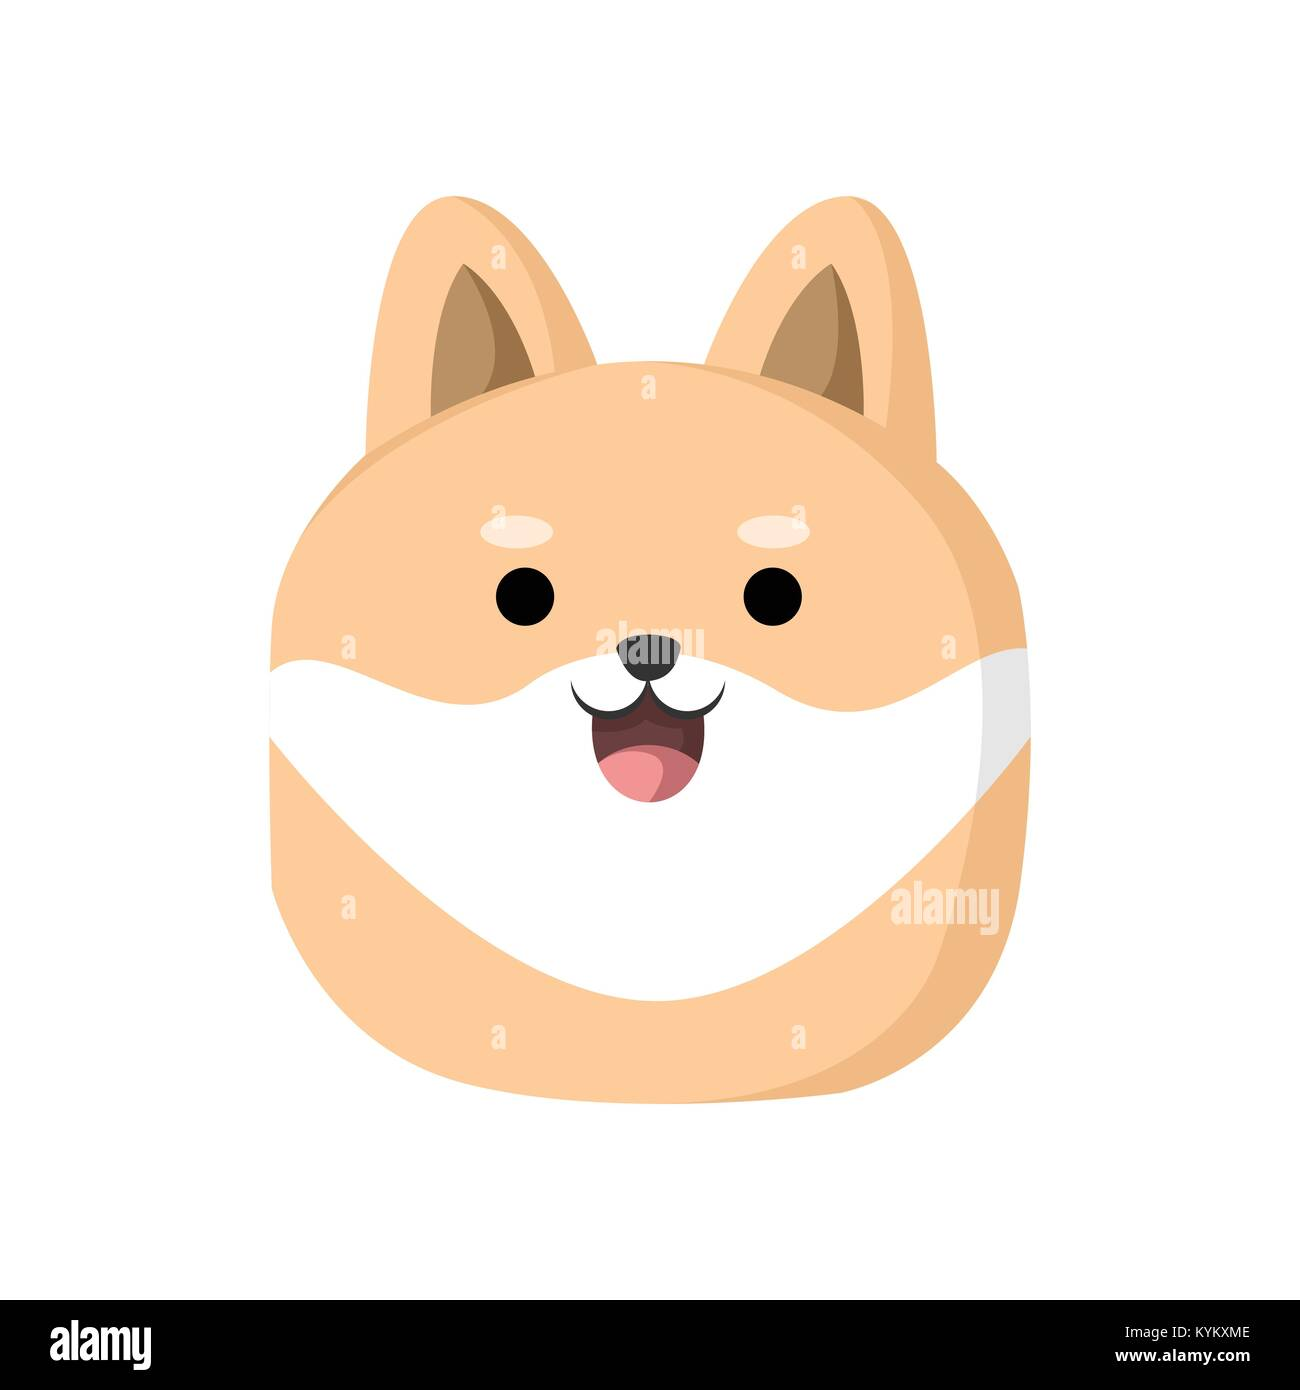 Cute Dog Cartoon Character Vector Illustration Graphic Design Stock